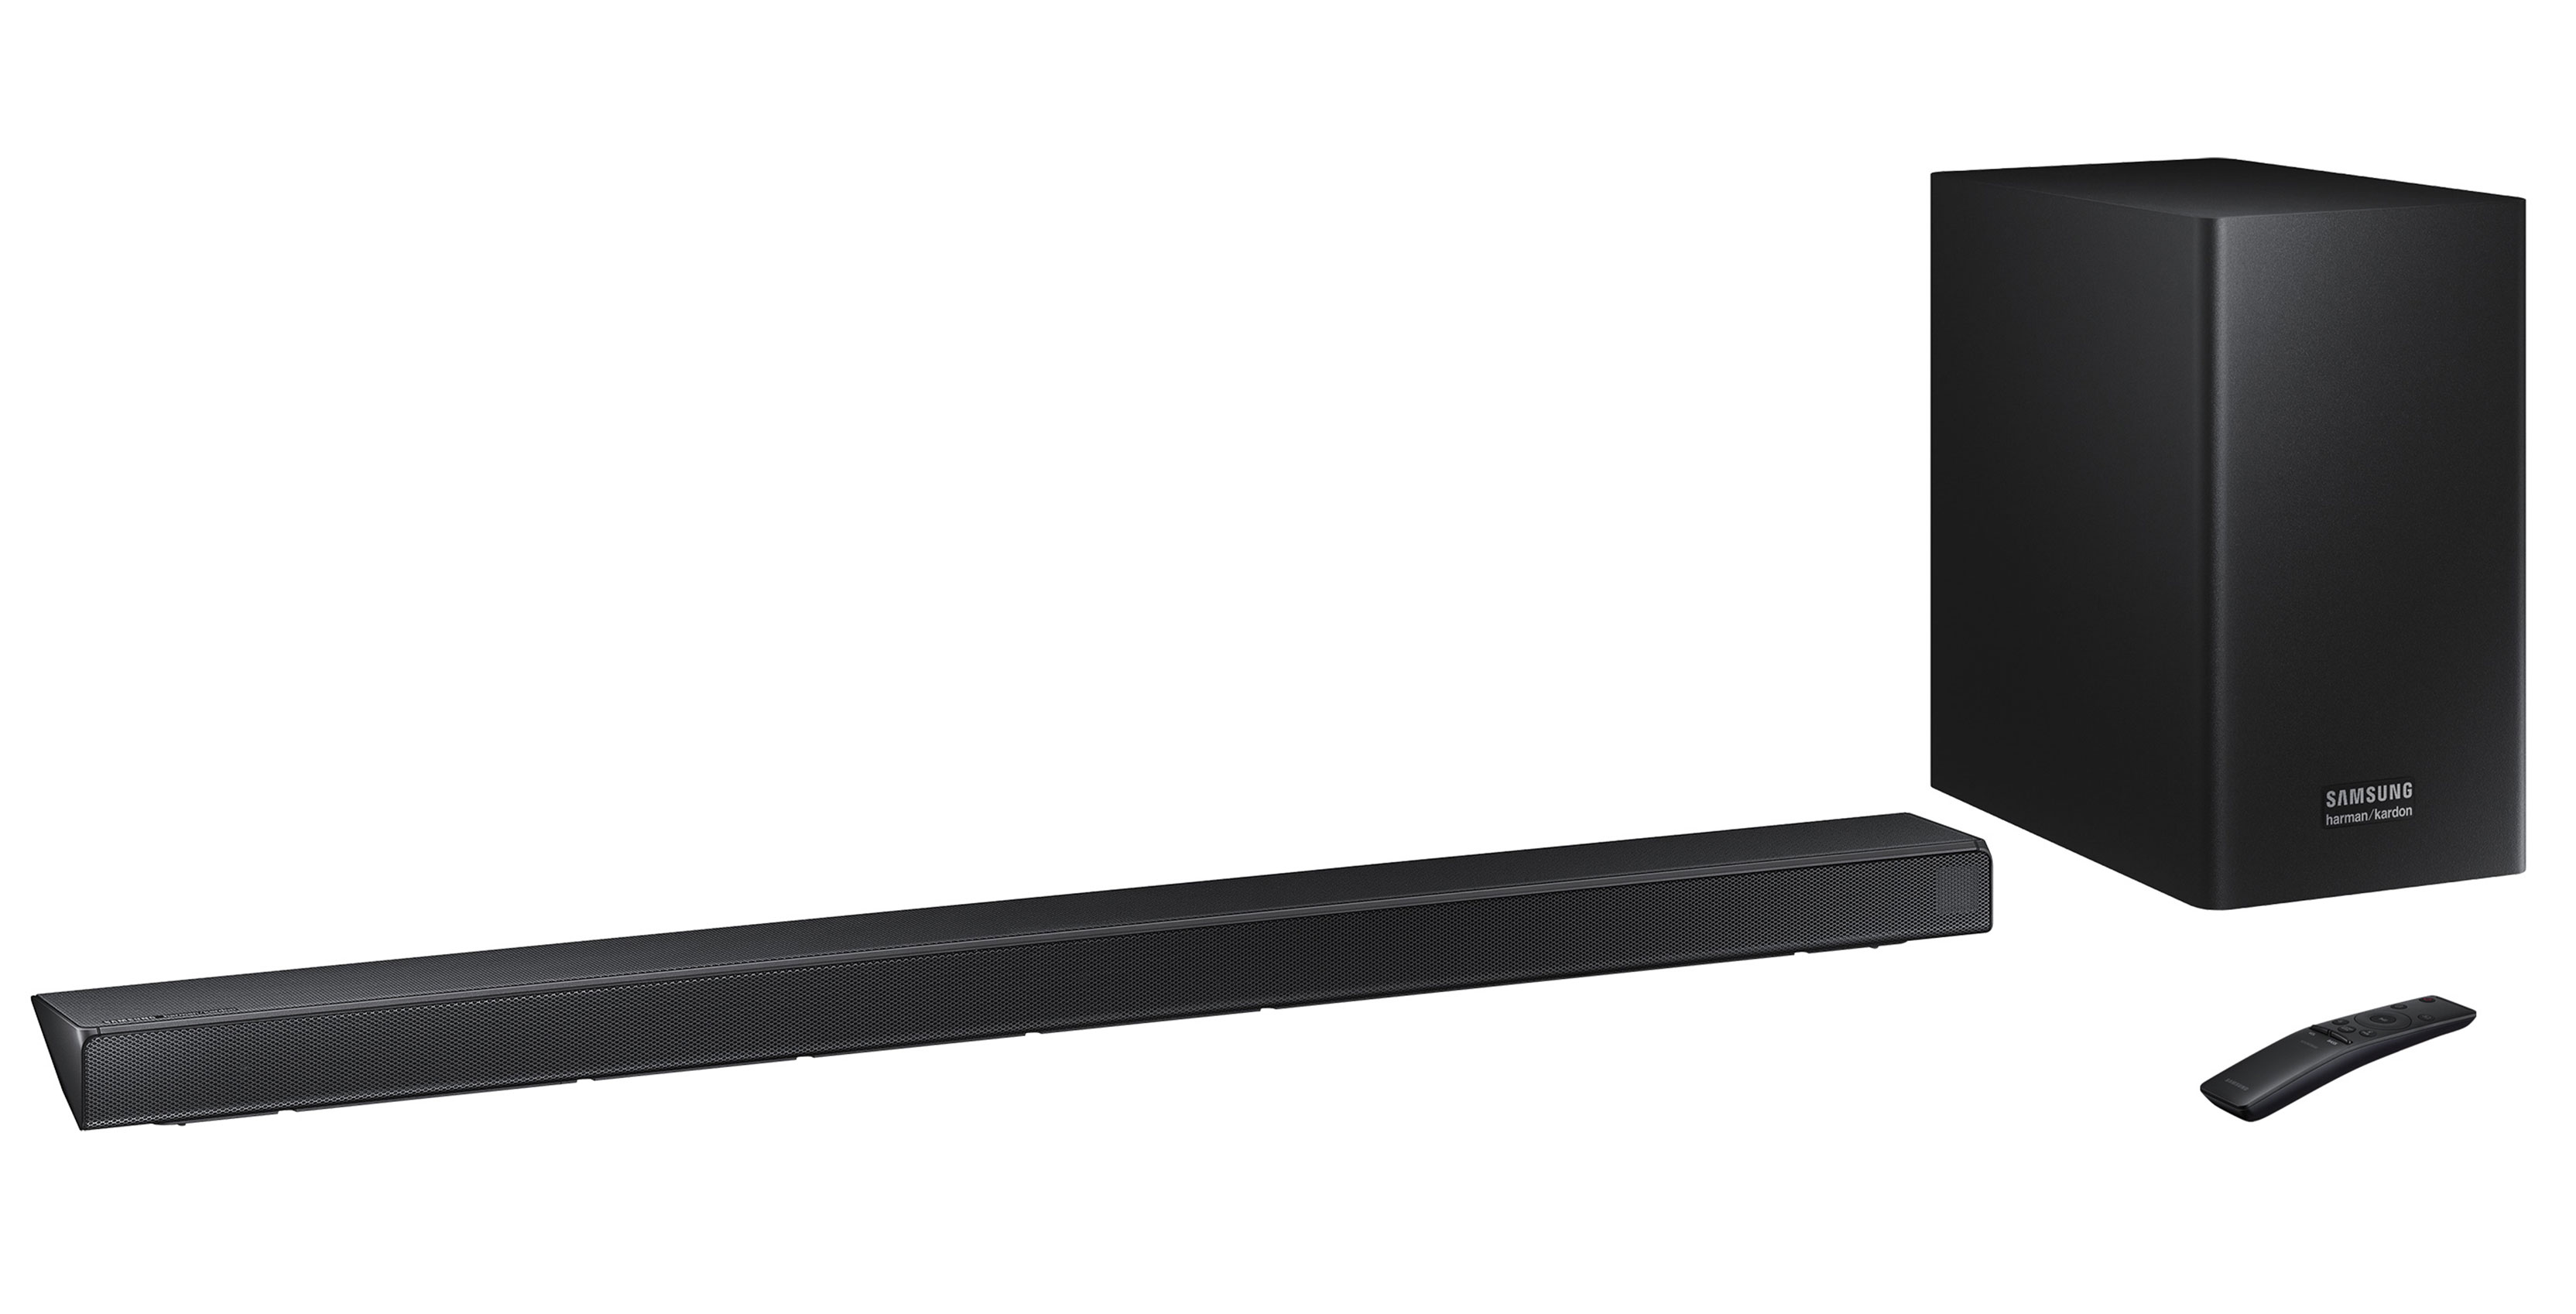 Samsung announces new soundbars, one with Dolby Atmos and DTS:X